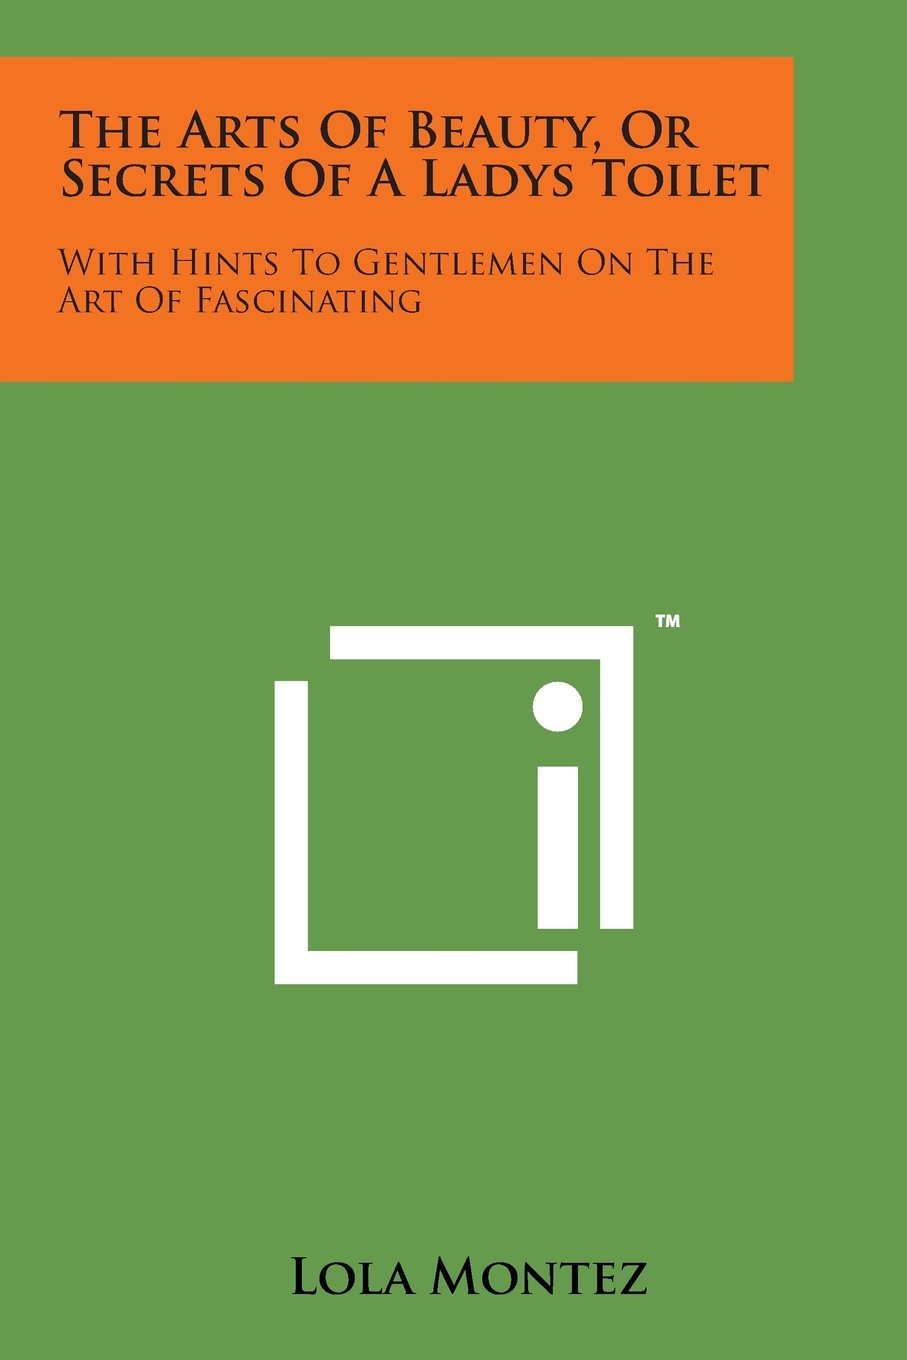 The Arts of Beauty, or Secrets of a Ladys Toilet: With Hints to Gentlemen on the Art of Fascinating pdf